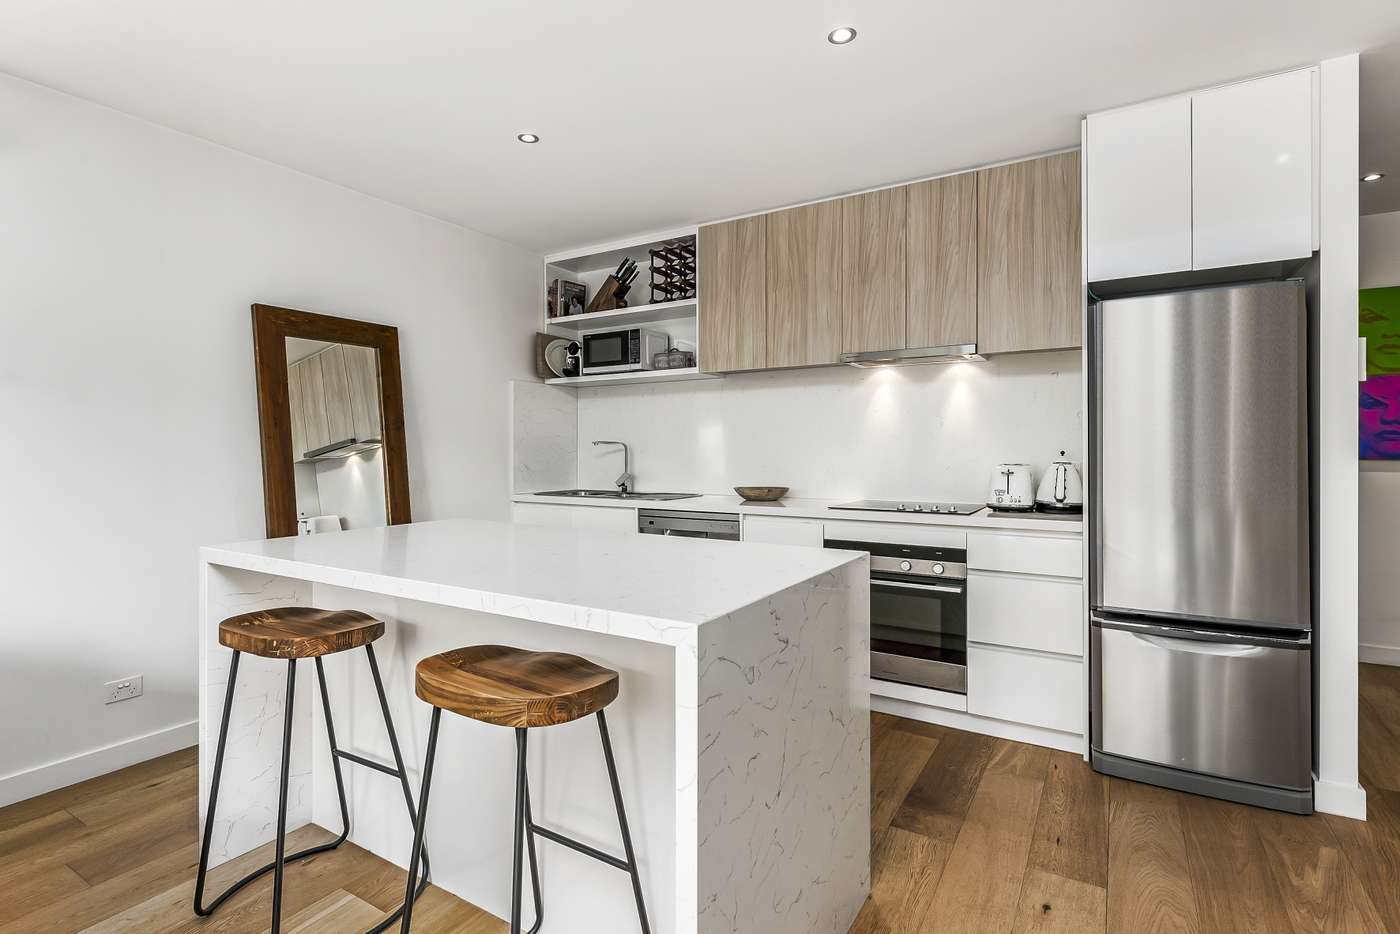 Main view of Homely apartment listing, Unit 4/83 Asling St, Brighton VIC 3186